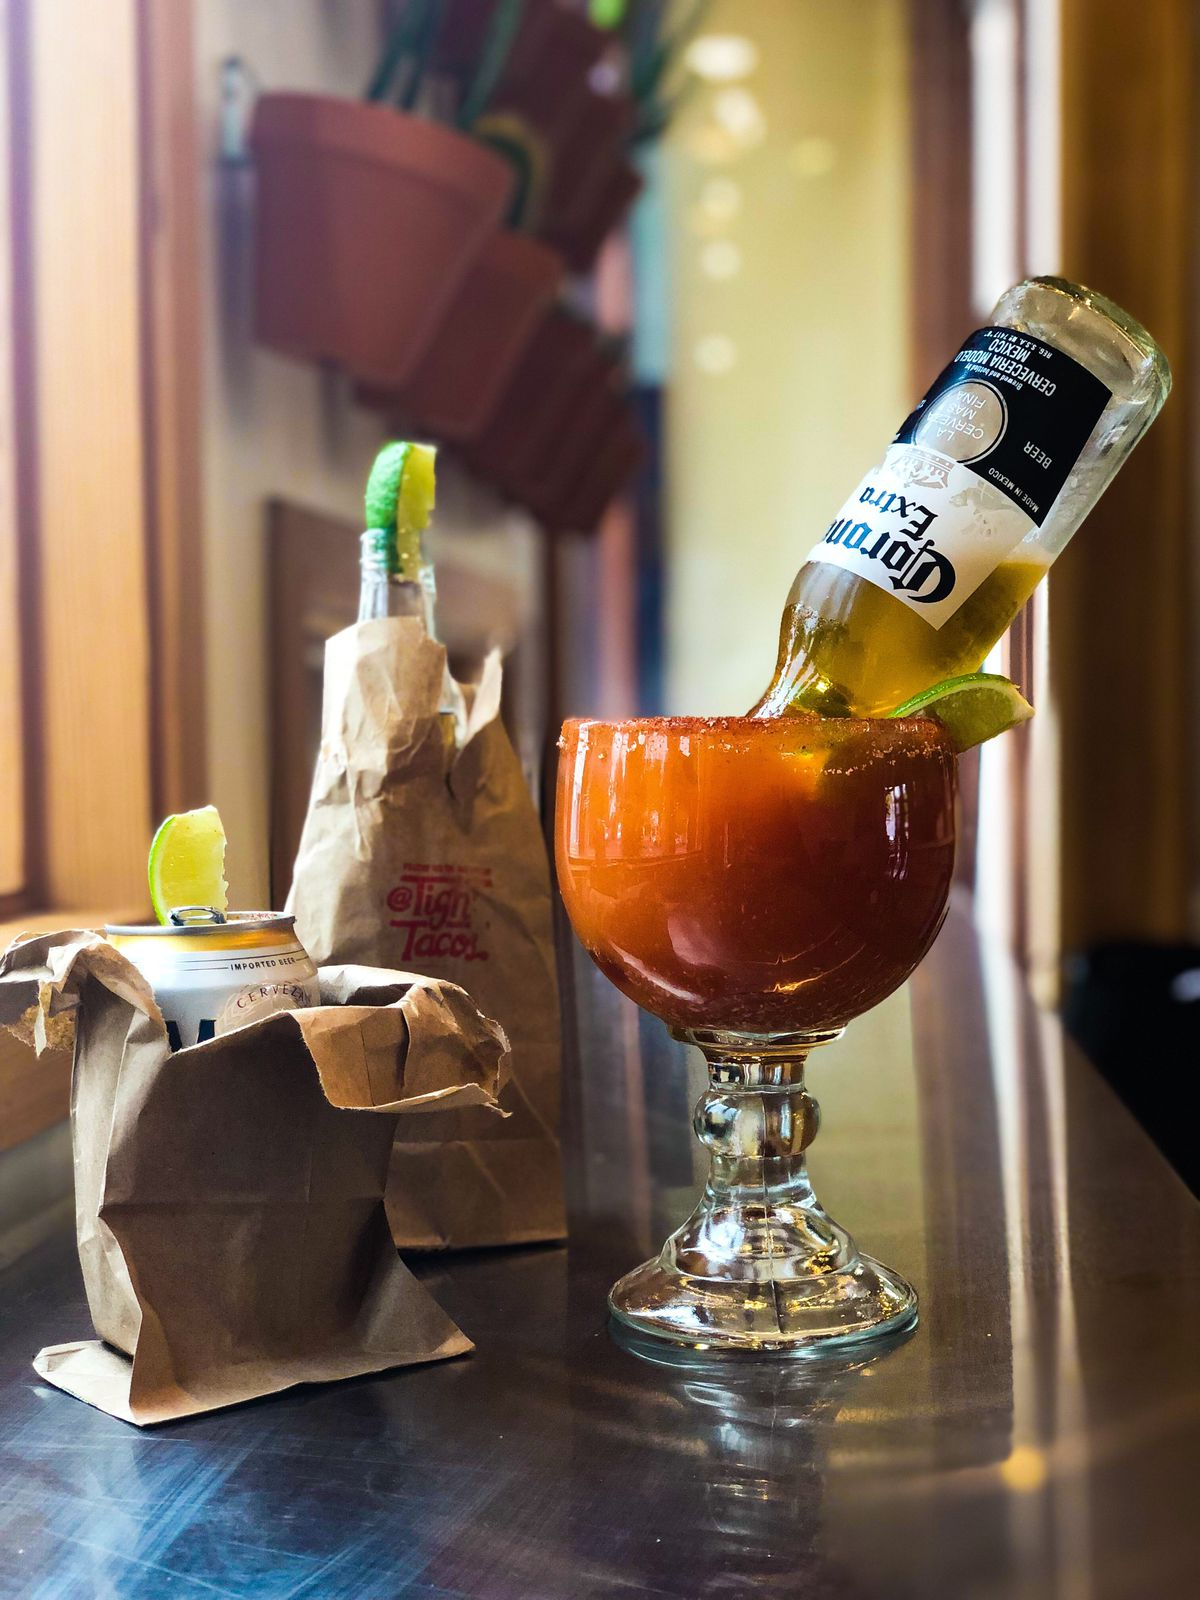 A picture of a michelada and two beers at Tight Tacos, which arrive in a margarita glass and paper bags, respectively